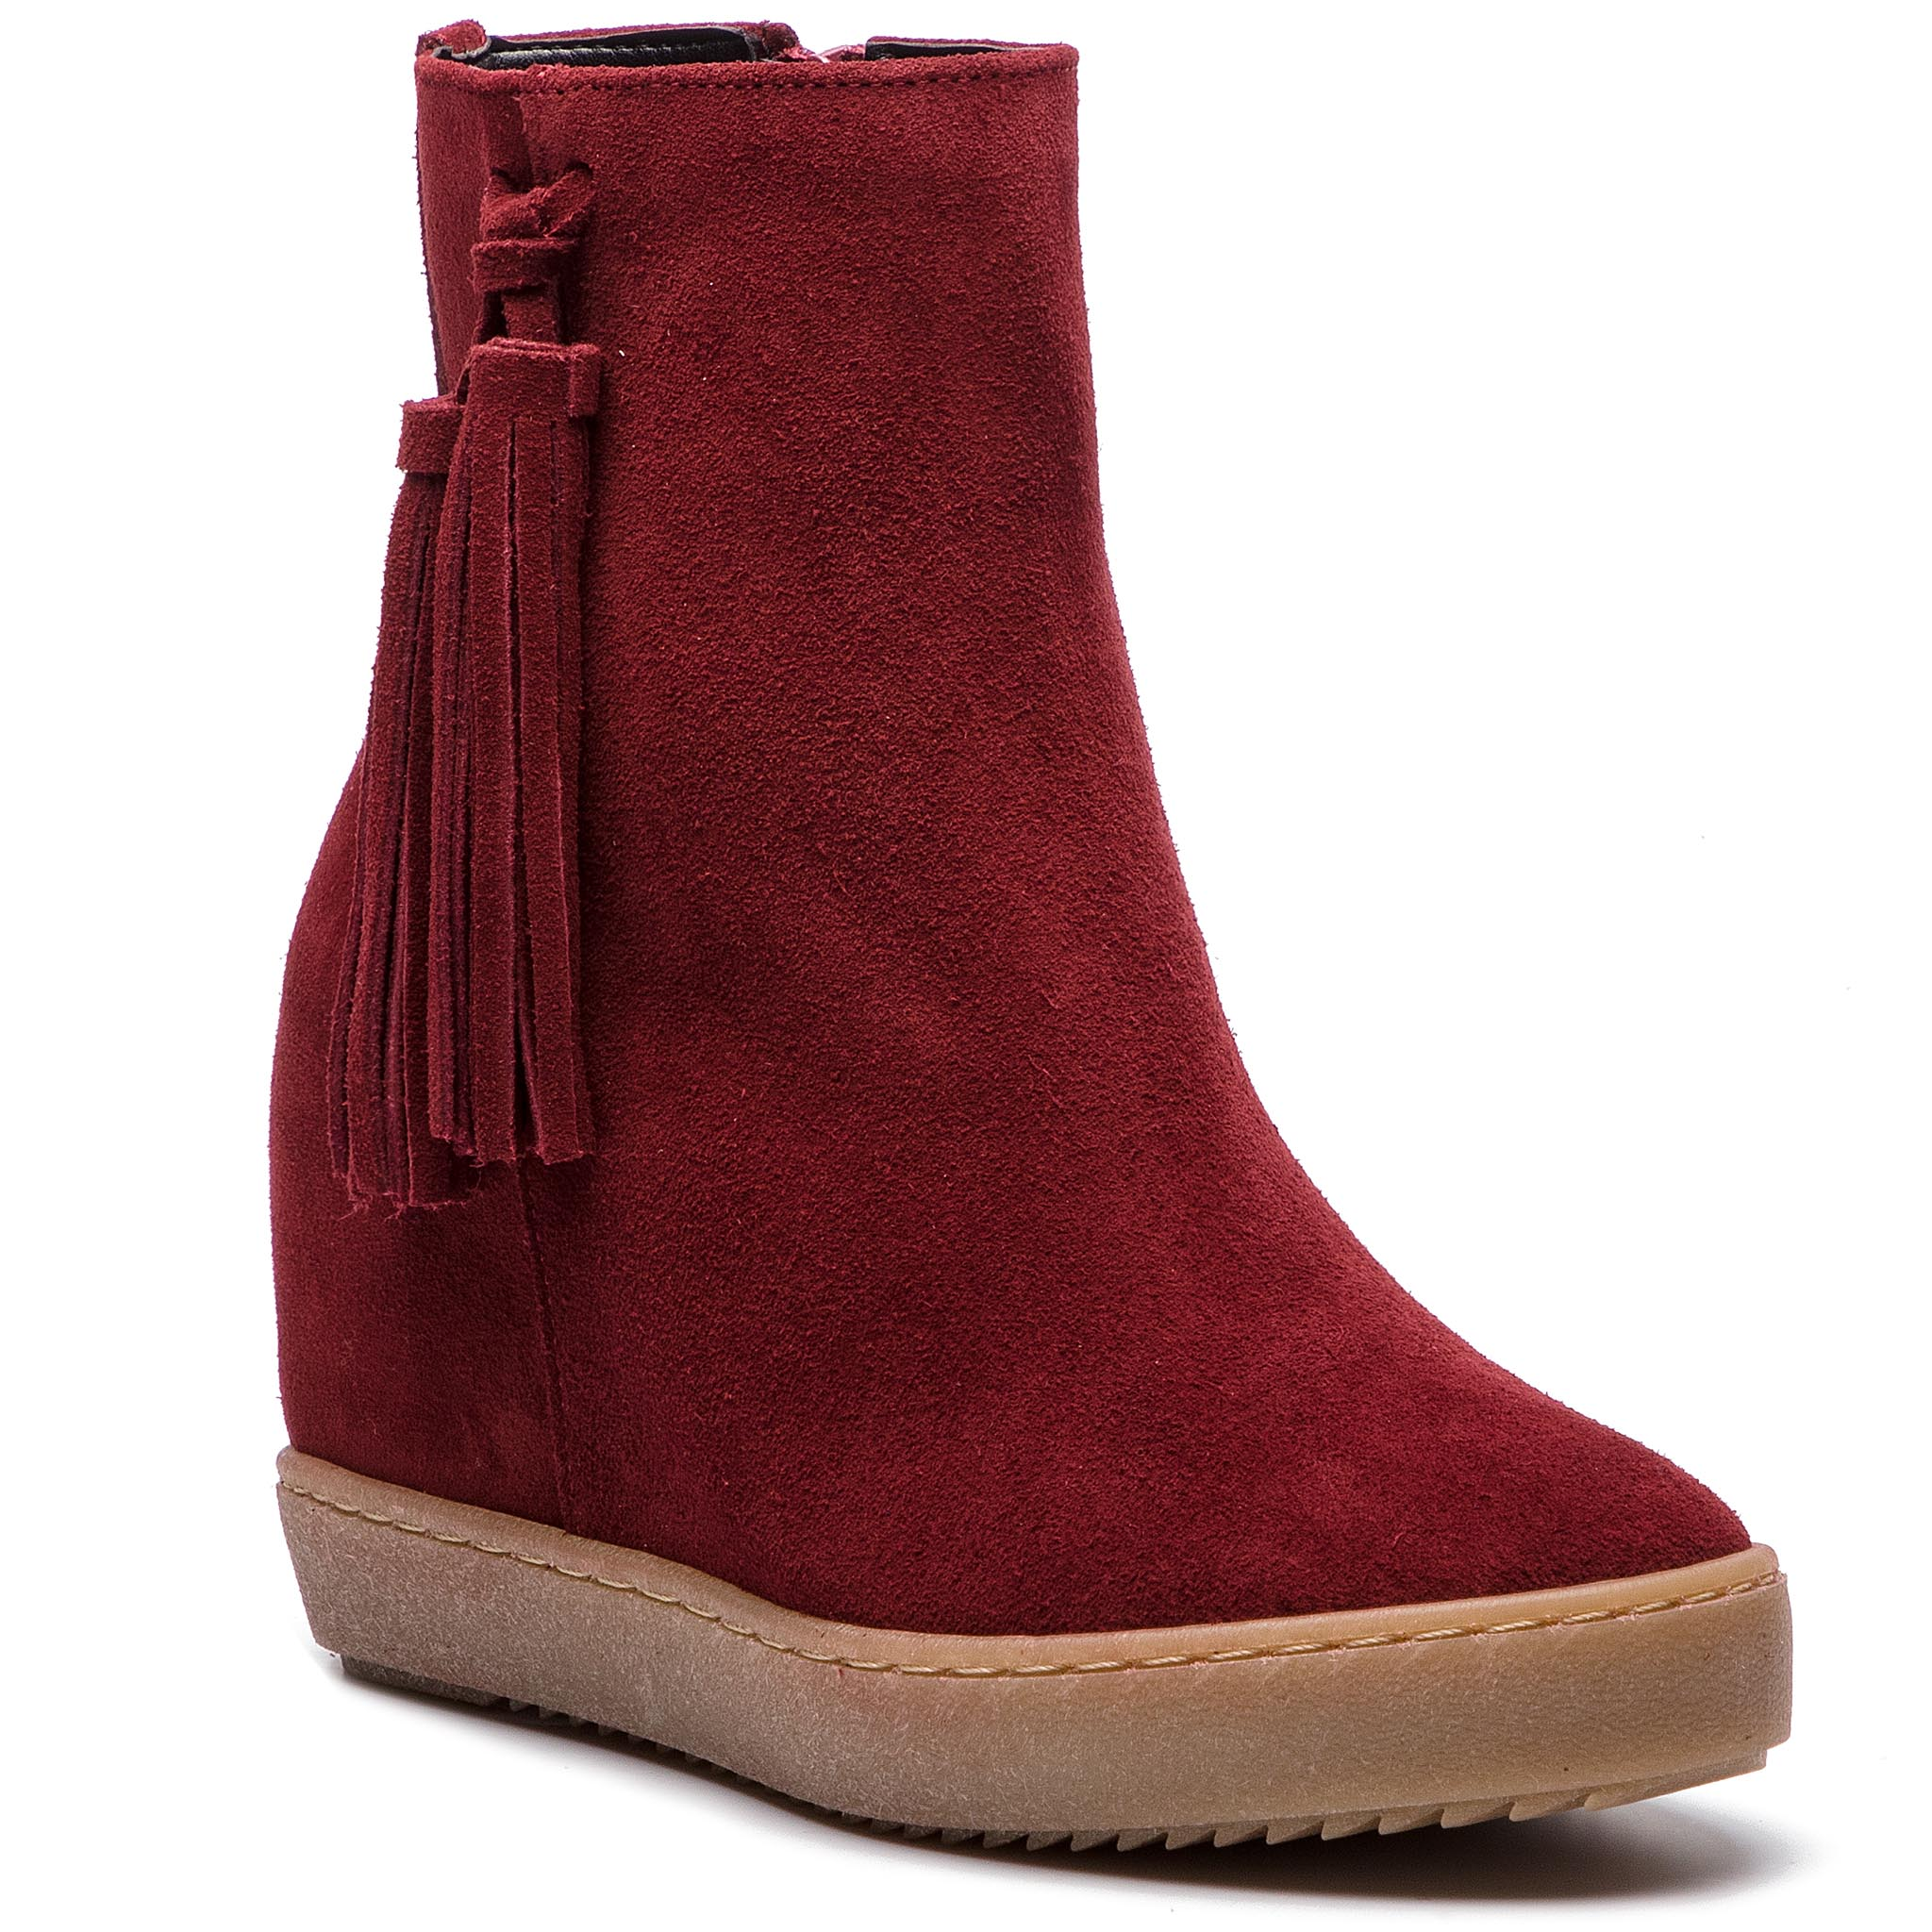 Bottines ROBERTO - 628 Bordo Welur